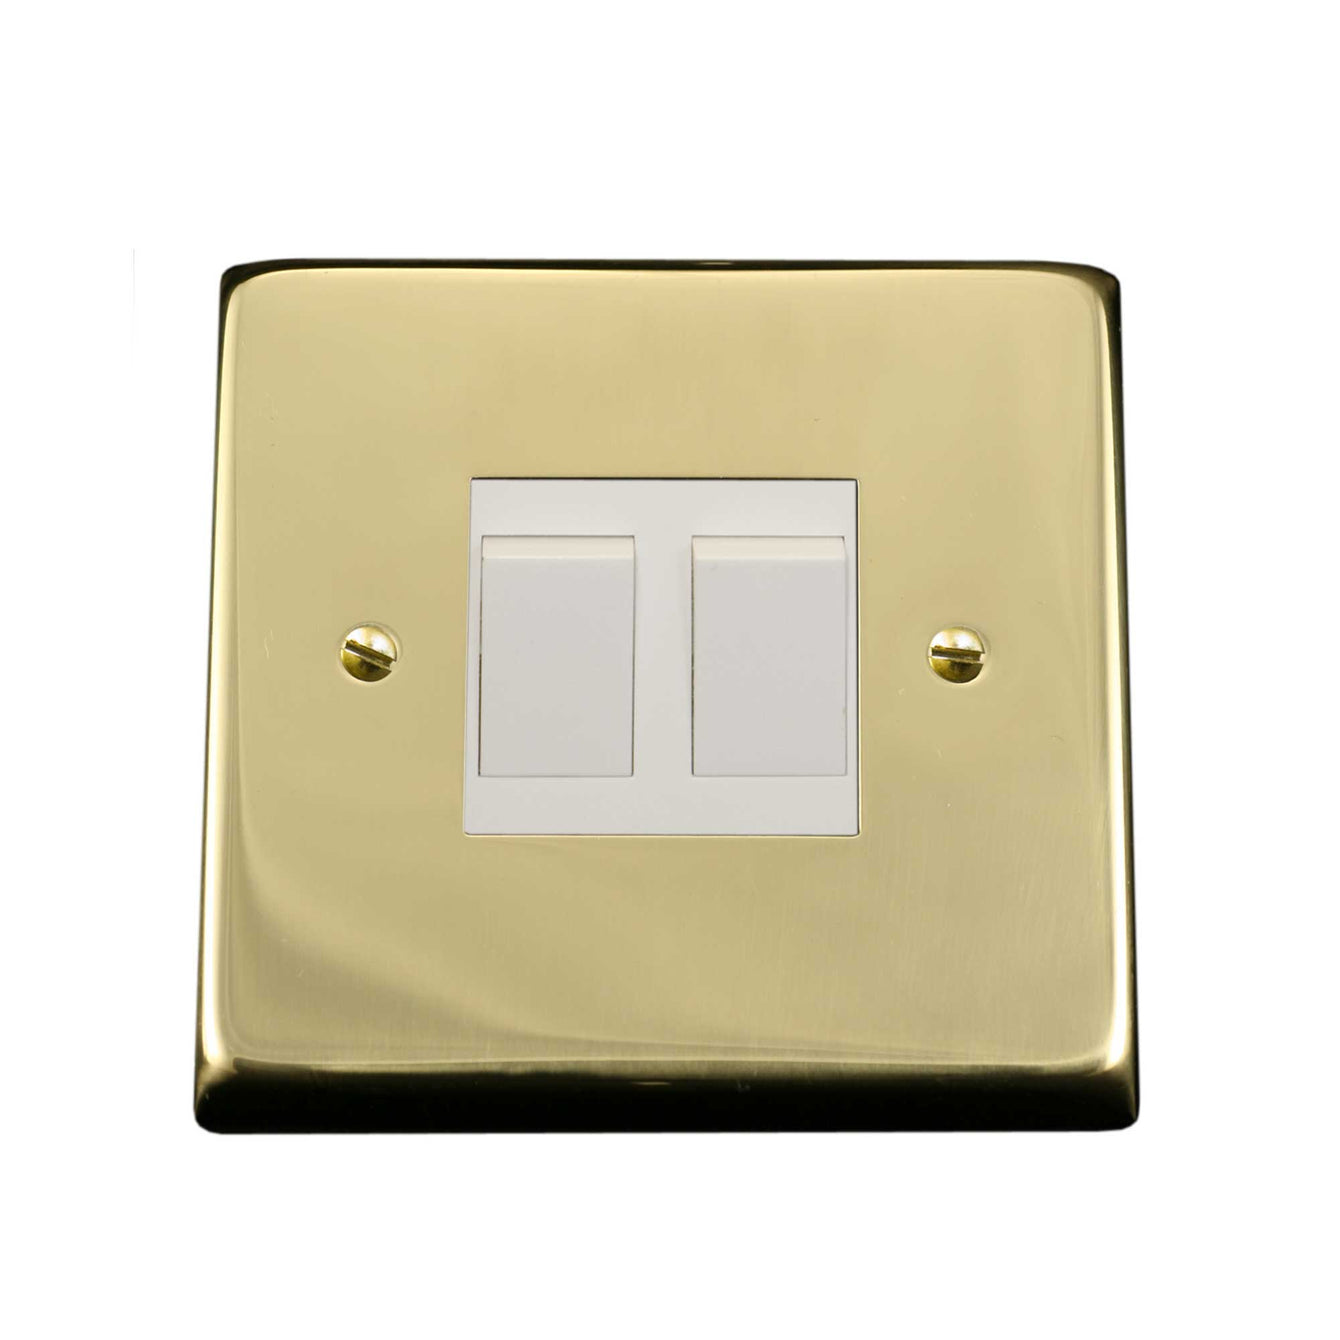 ElekTek Light Switch Conversion Cover Plate Double Victorian - Buy It Better Chrome